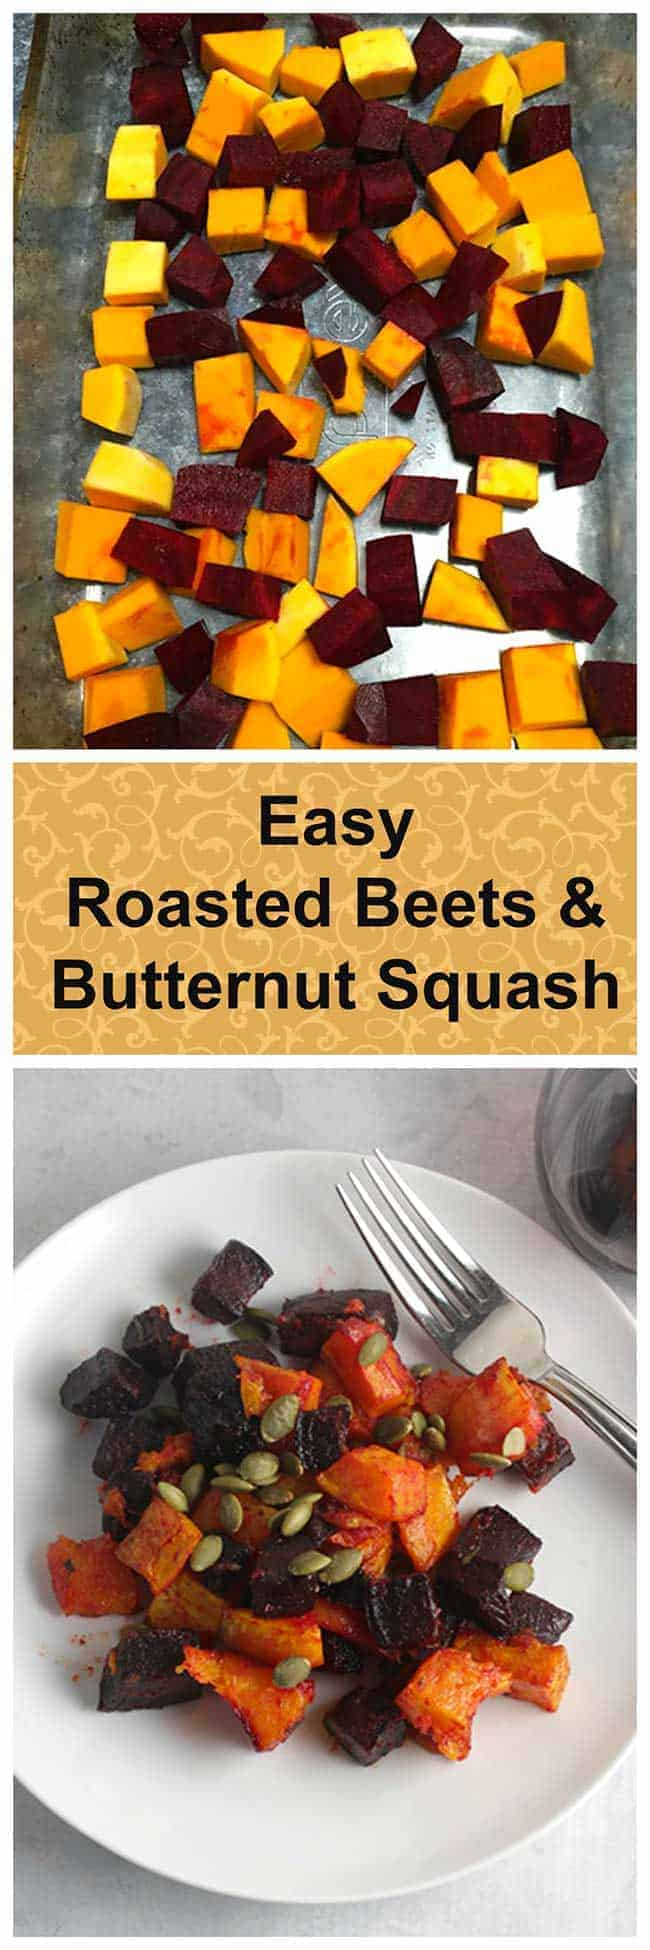 roasted beets and butternut squash recipe, an easy and healthy #glutenfree holiday side dish. #beets #sidedishrecipes